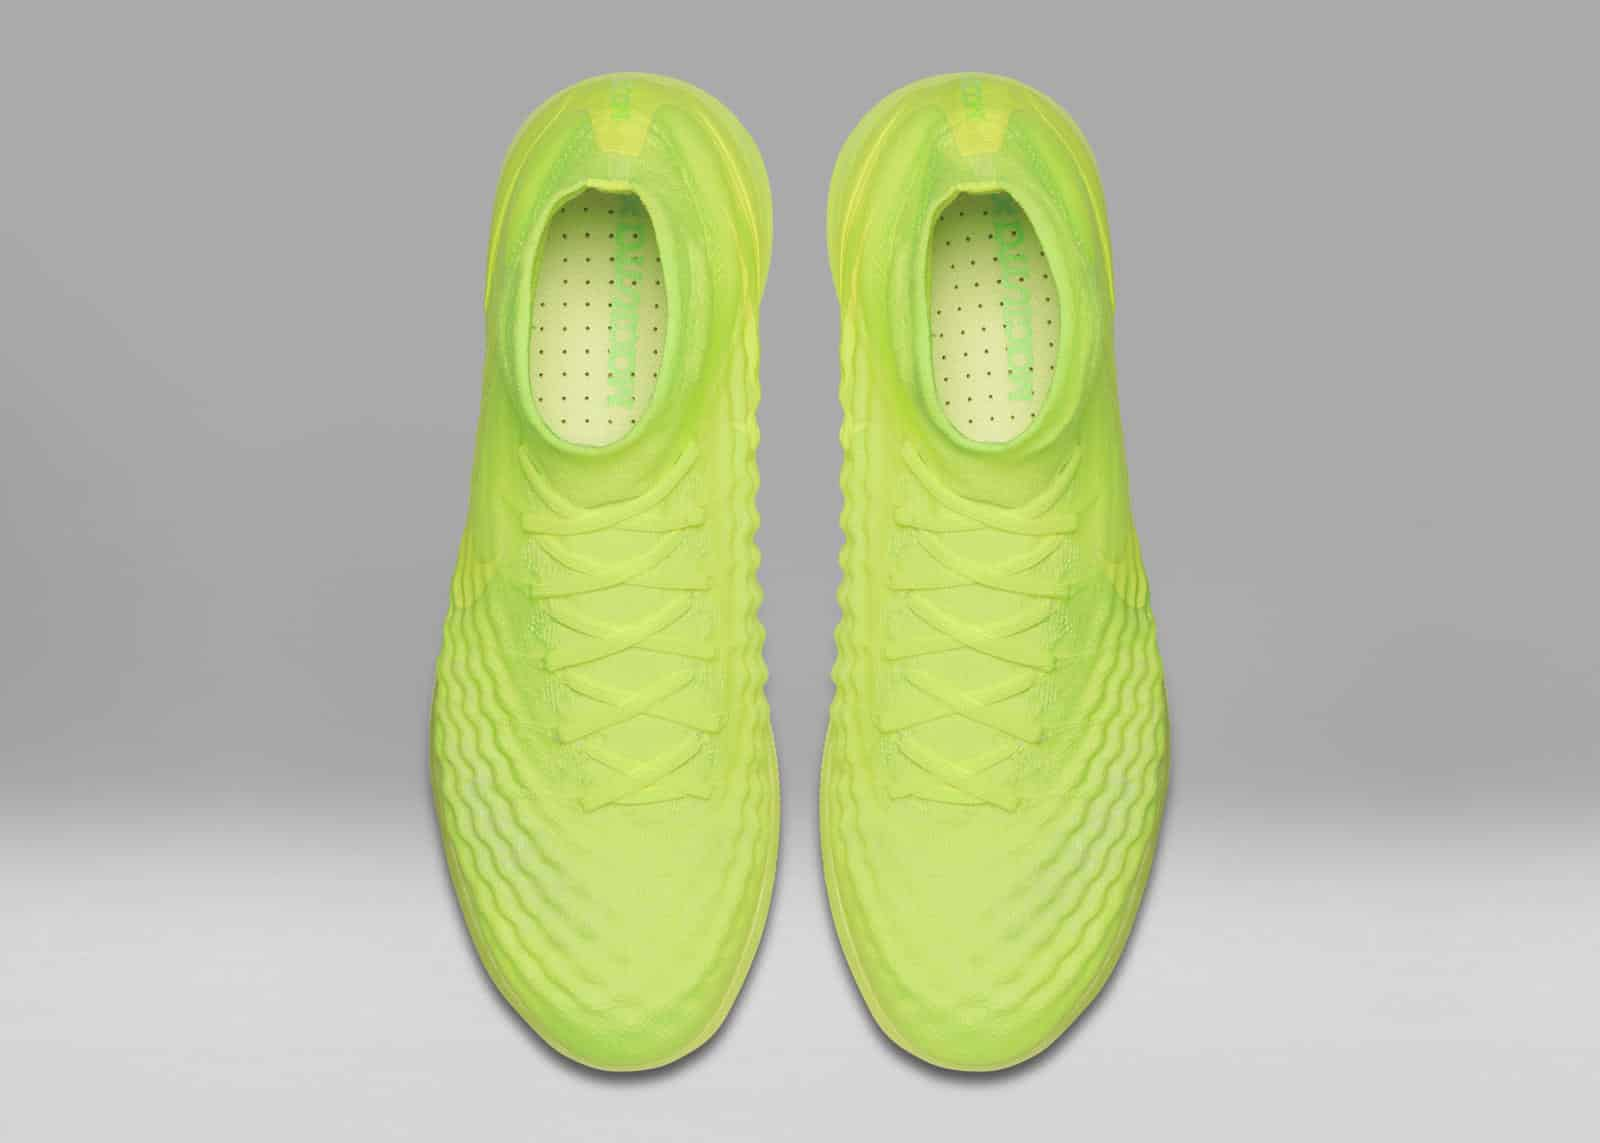 chaussure-foot-nike-magistax-proximo-pack-floodlight-glow-fluorescent-2016-2